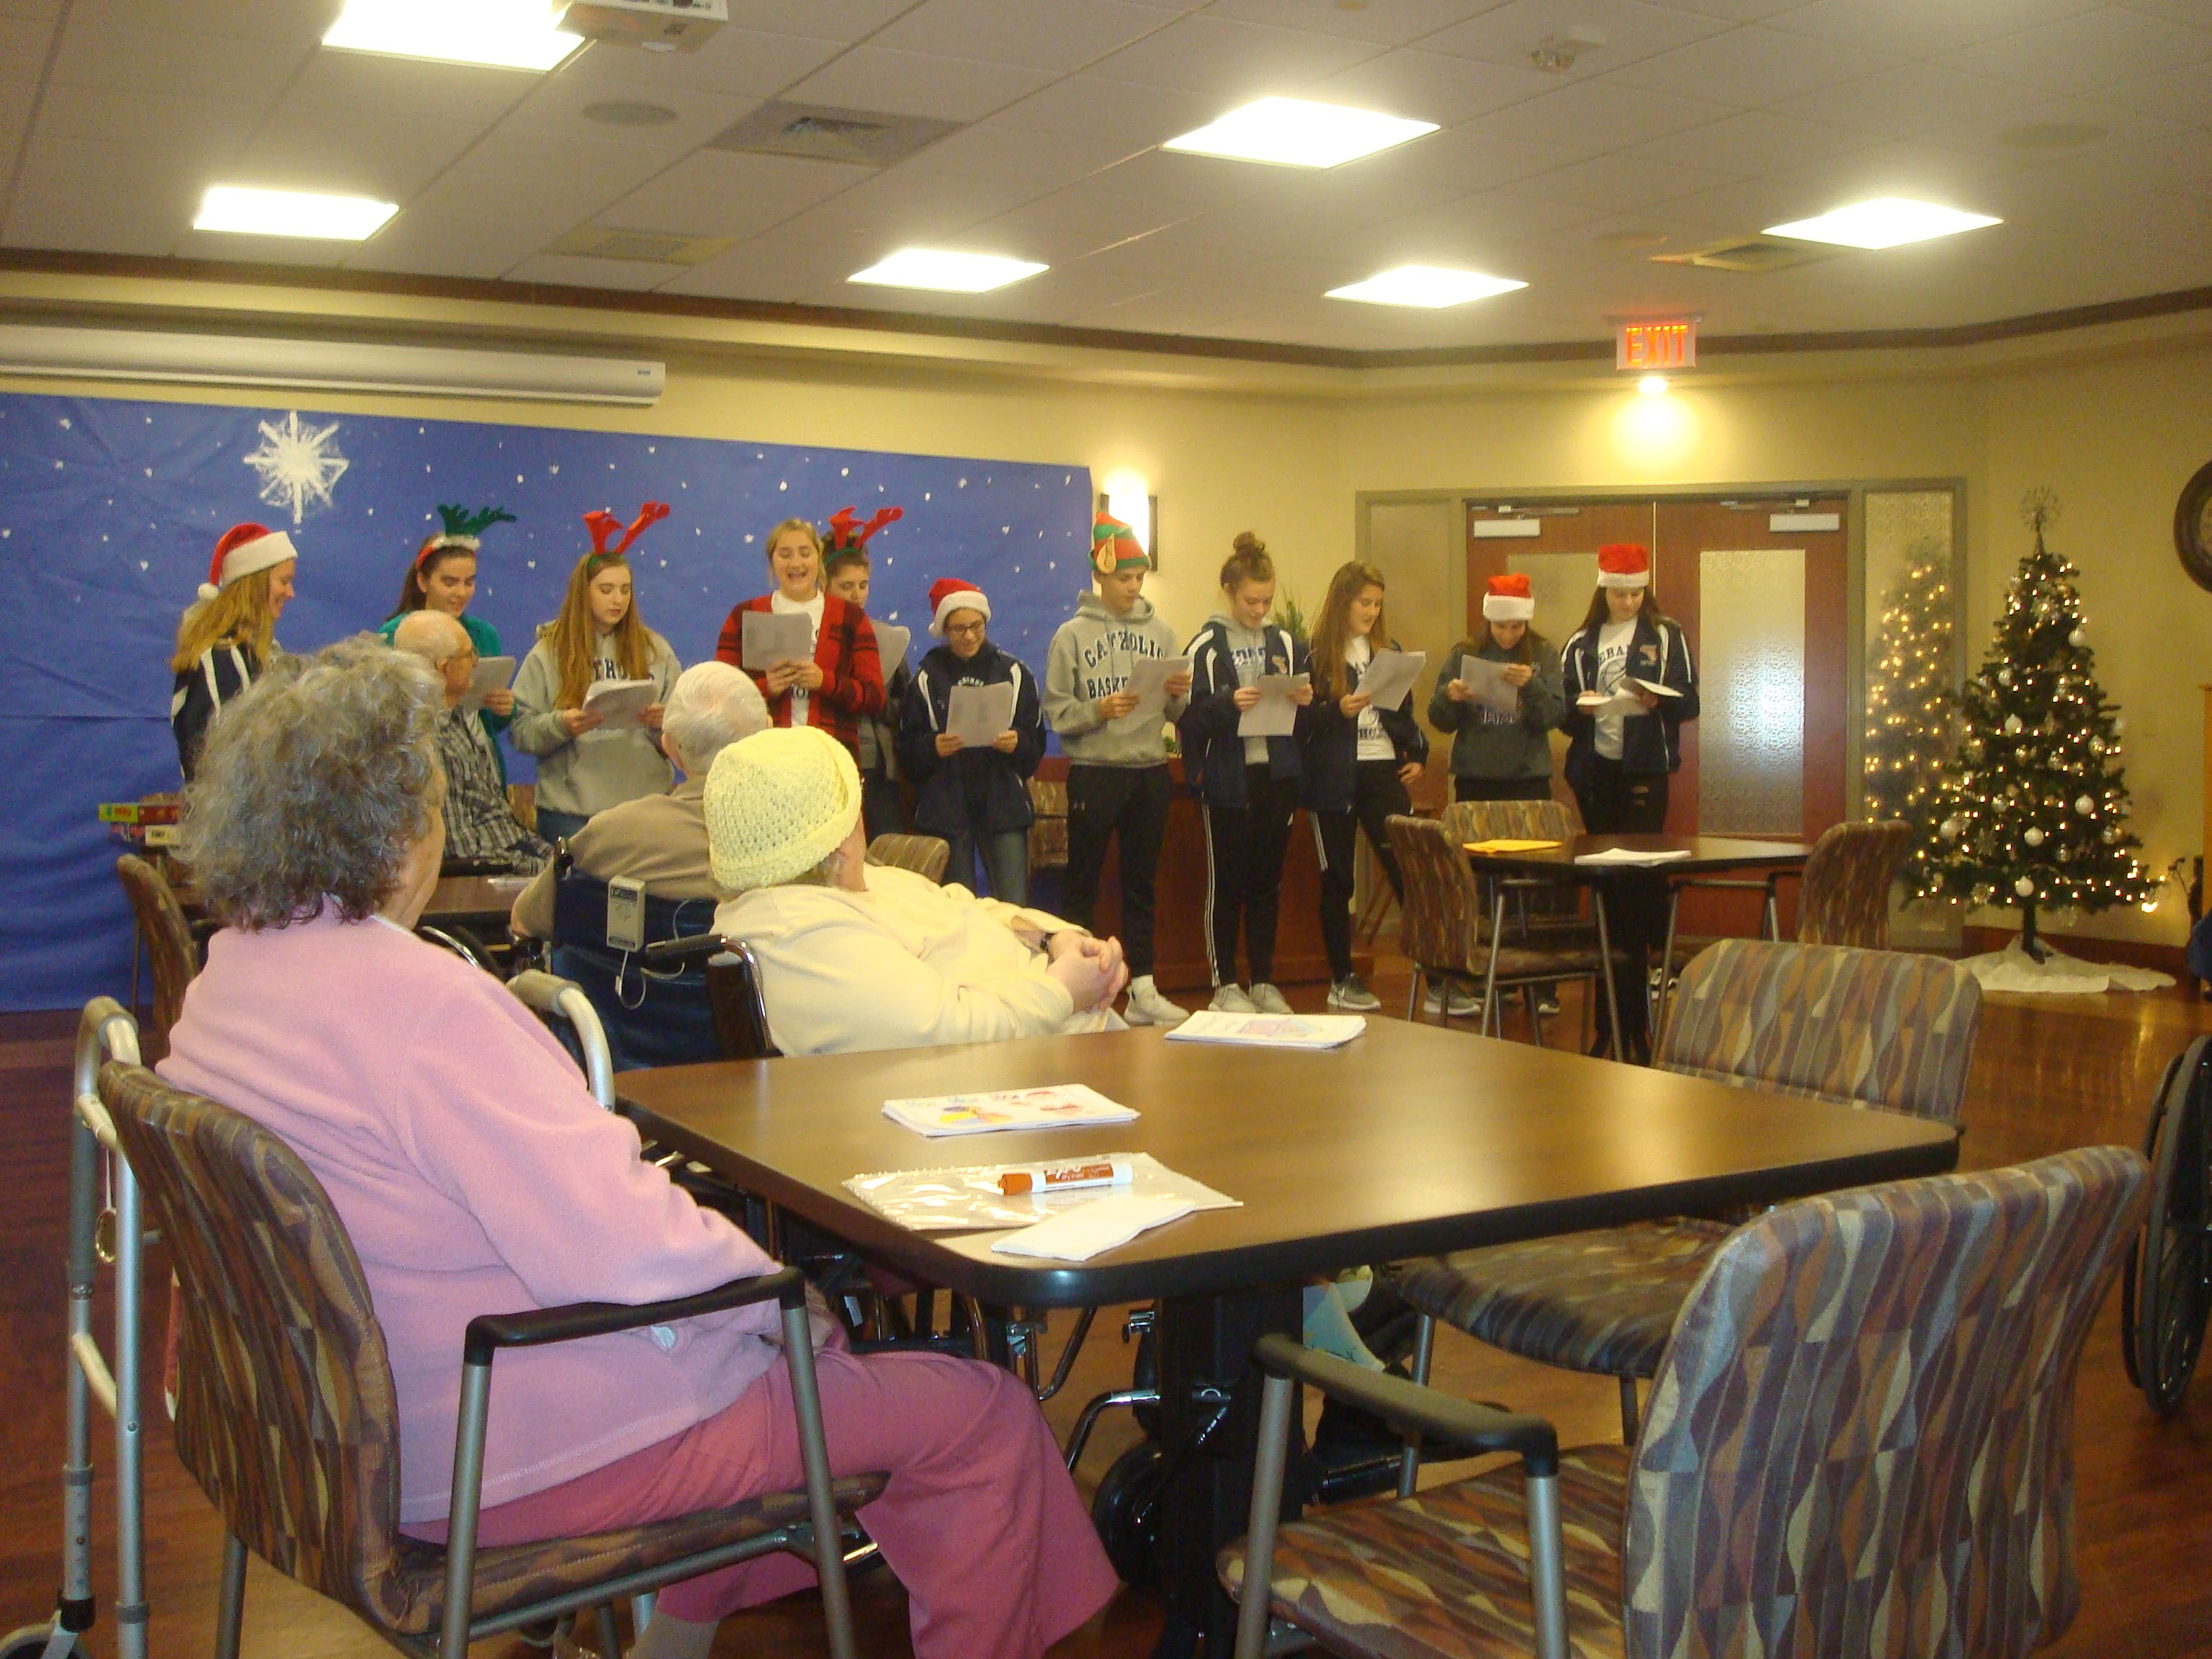 The Lebanon Catholic girls basketball team recently visited Cornwall Manor and sang Christmas carols with the residents.